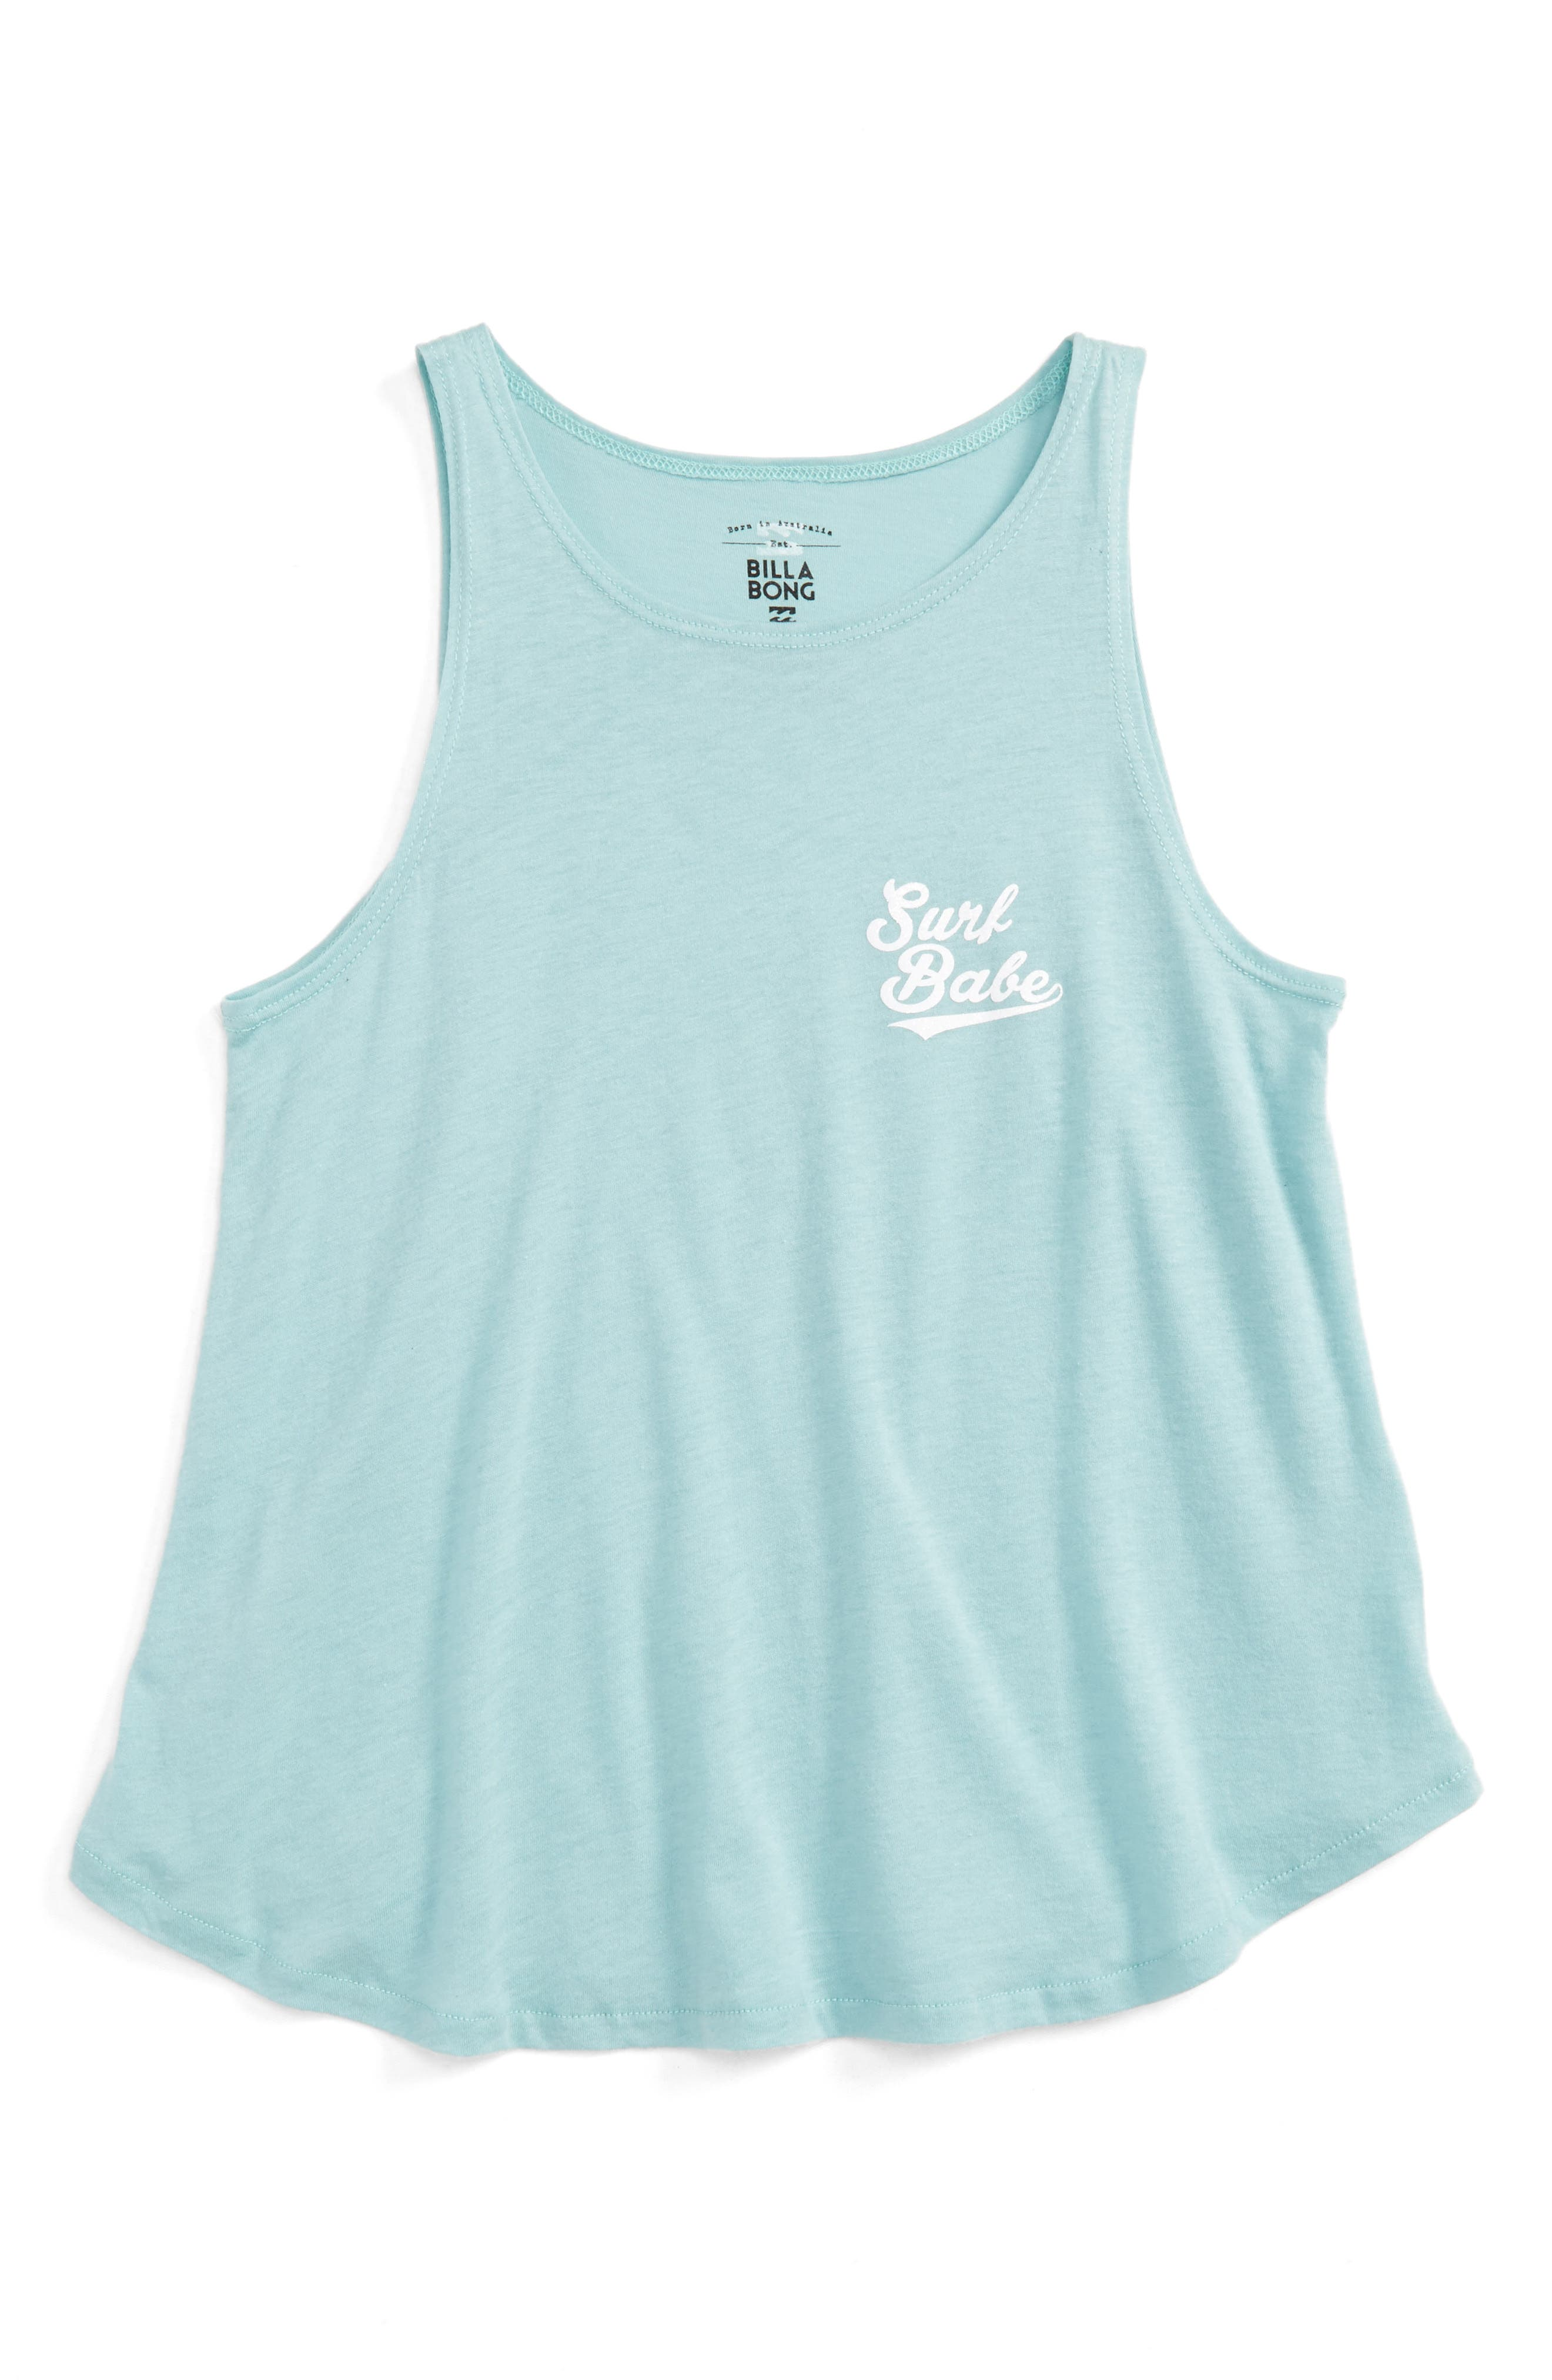 Main Image - Billabong Surf Babe Graphic Tank (Little Girls & Big Girls)